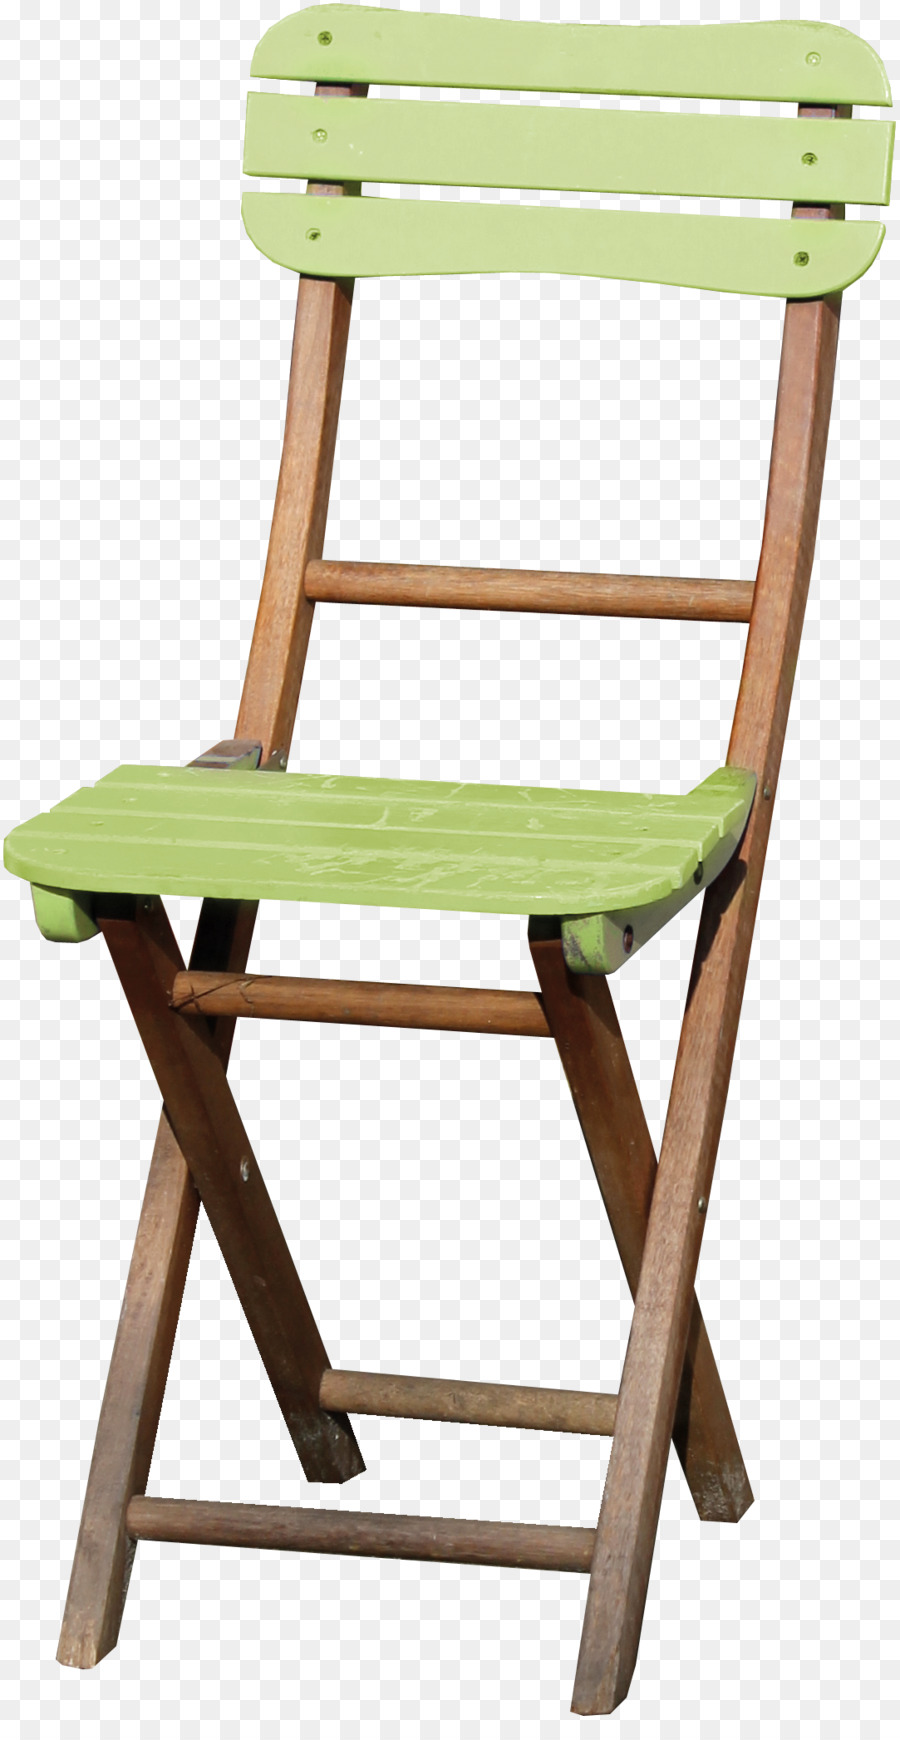 Chair Bench Stool - Wooden chairs png download - 1083*2070 - Free ...